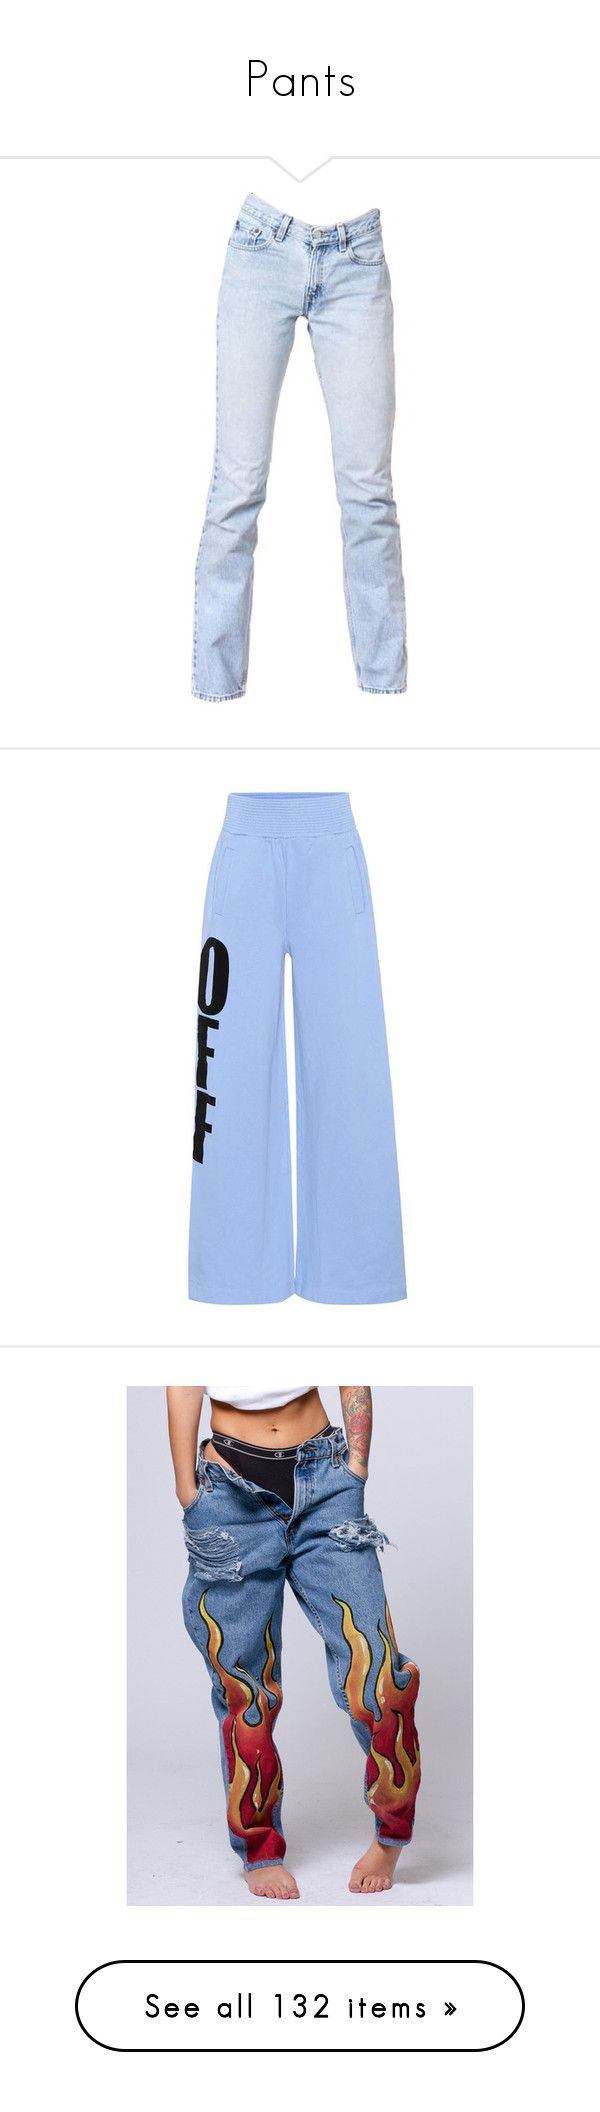 """Pants"" by avagosha ❤ liked on Polyvore featuring pants, bottoms, trousers, blue, off white trousers, blue pants, cotton jersey, blue trousers, off white pants and jeans"